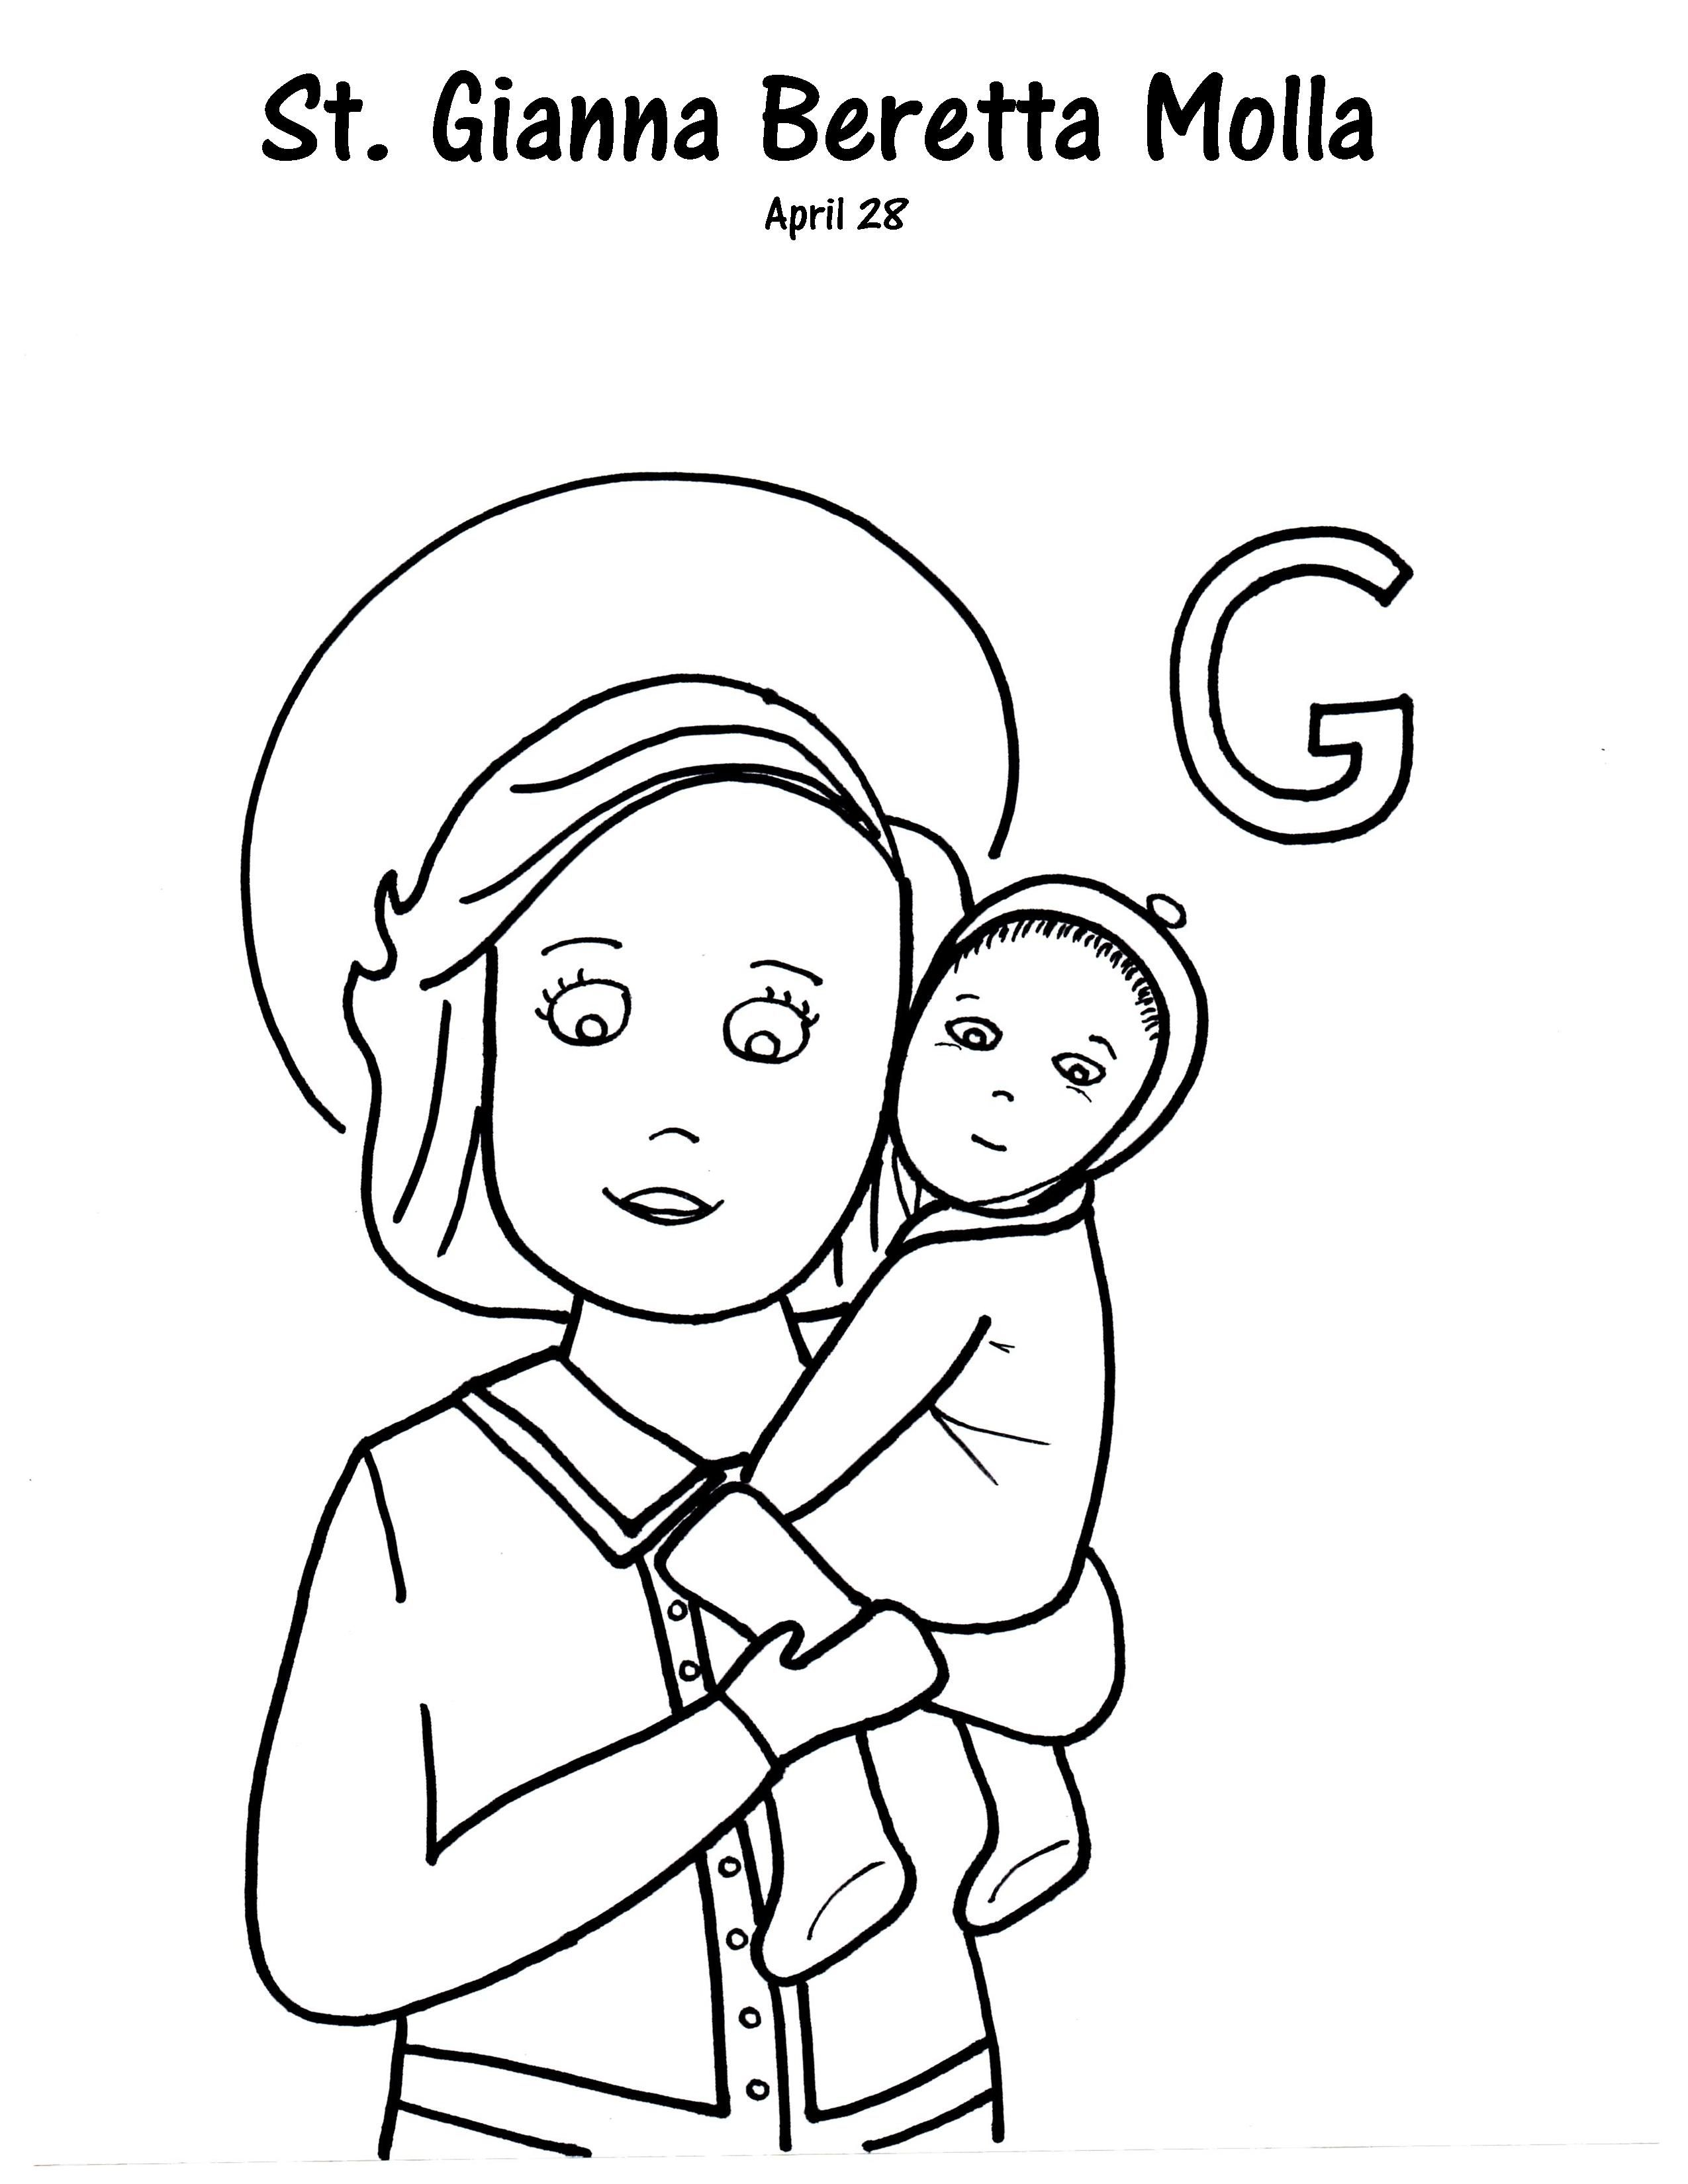 G is for St. Gianna Beretta Molla | Pdf, Filing and Catholic kids